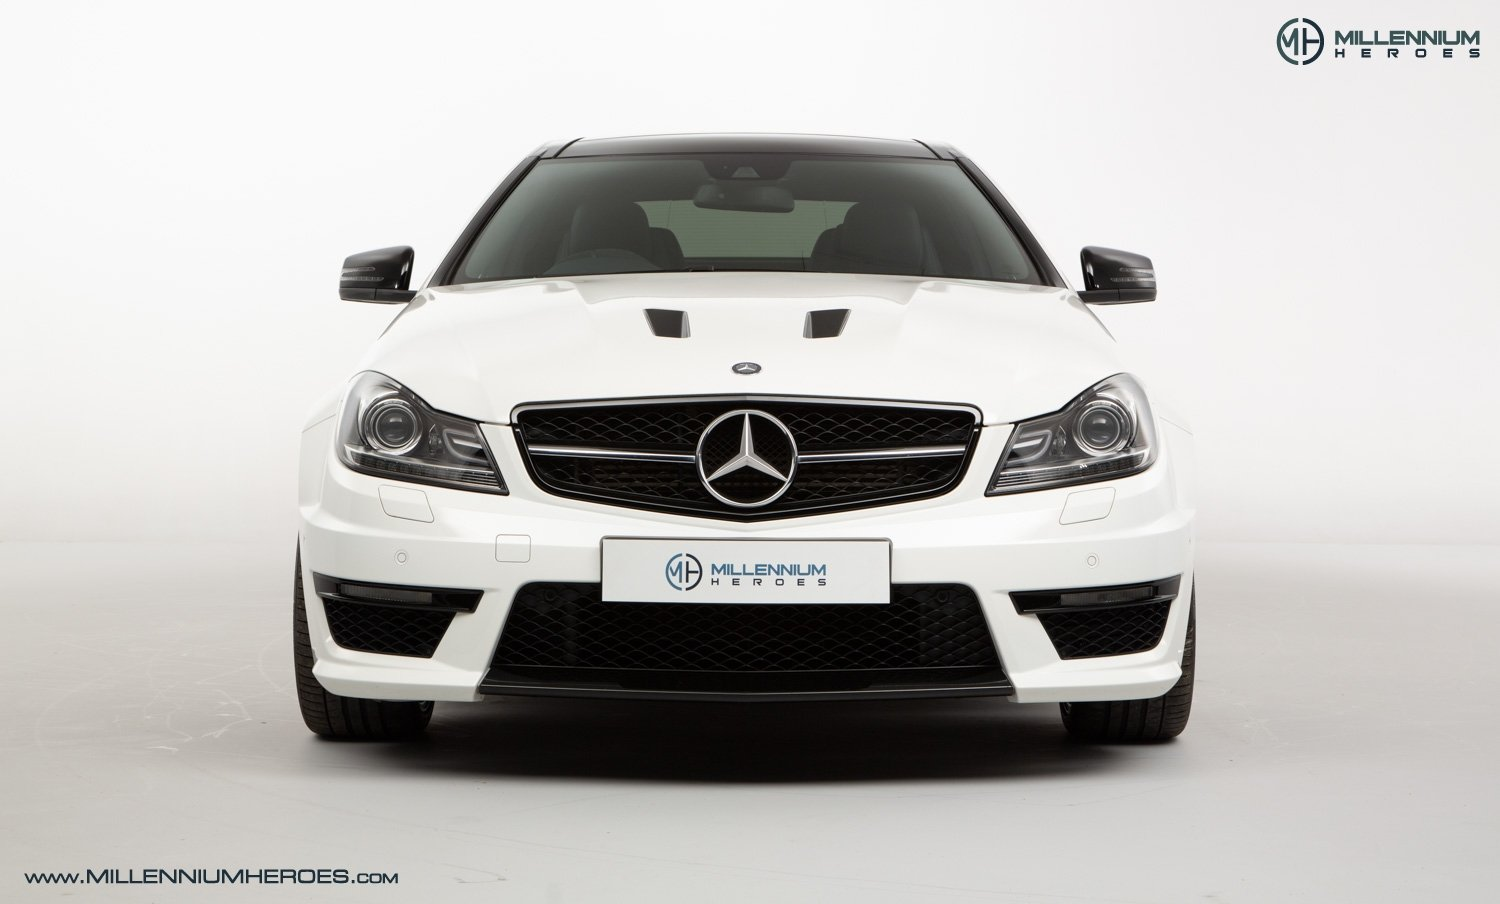 2013 MERCEDES C63 507 COUPE For Sale (picture 4 of 22)